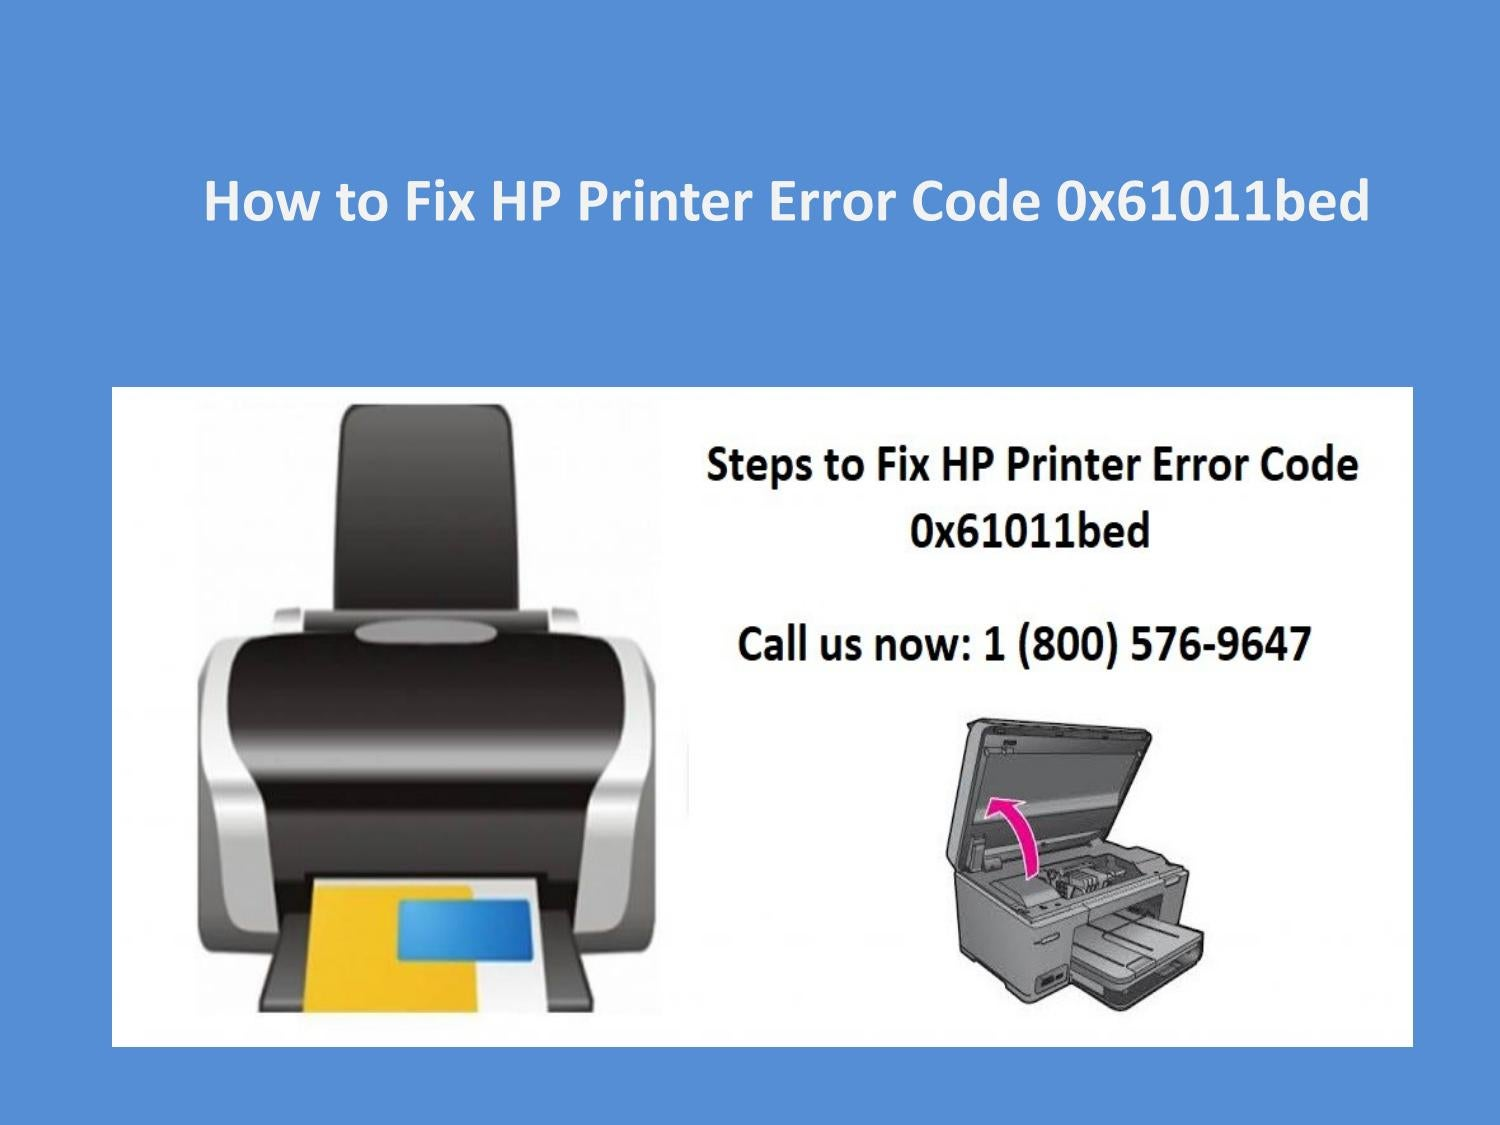 Fix HP Printer Error Code 0x61011bed, Call 1-800-576-9647 by HP